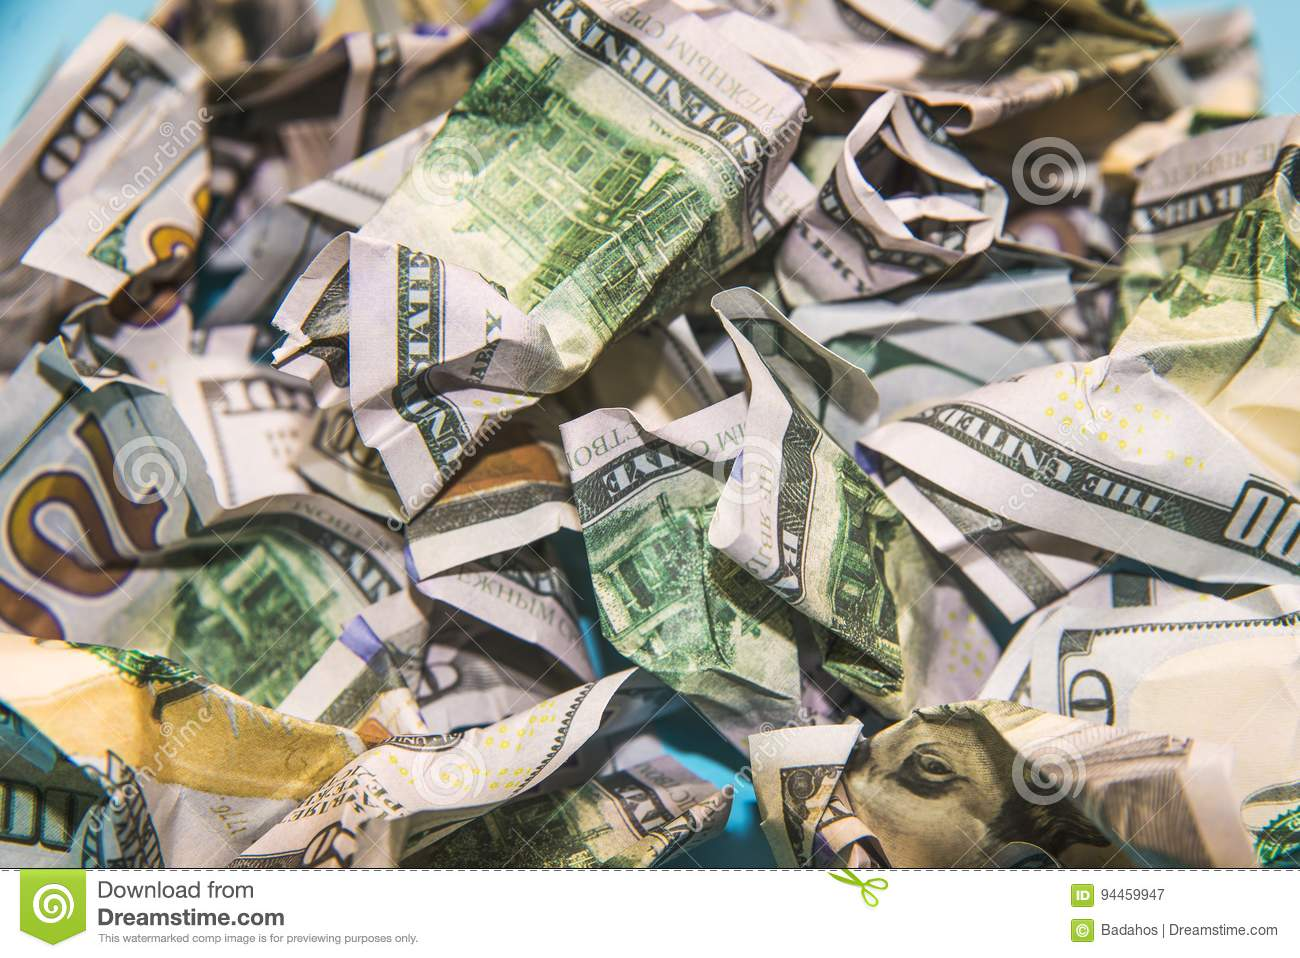 Image result for pic of crumpled up money